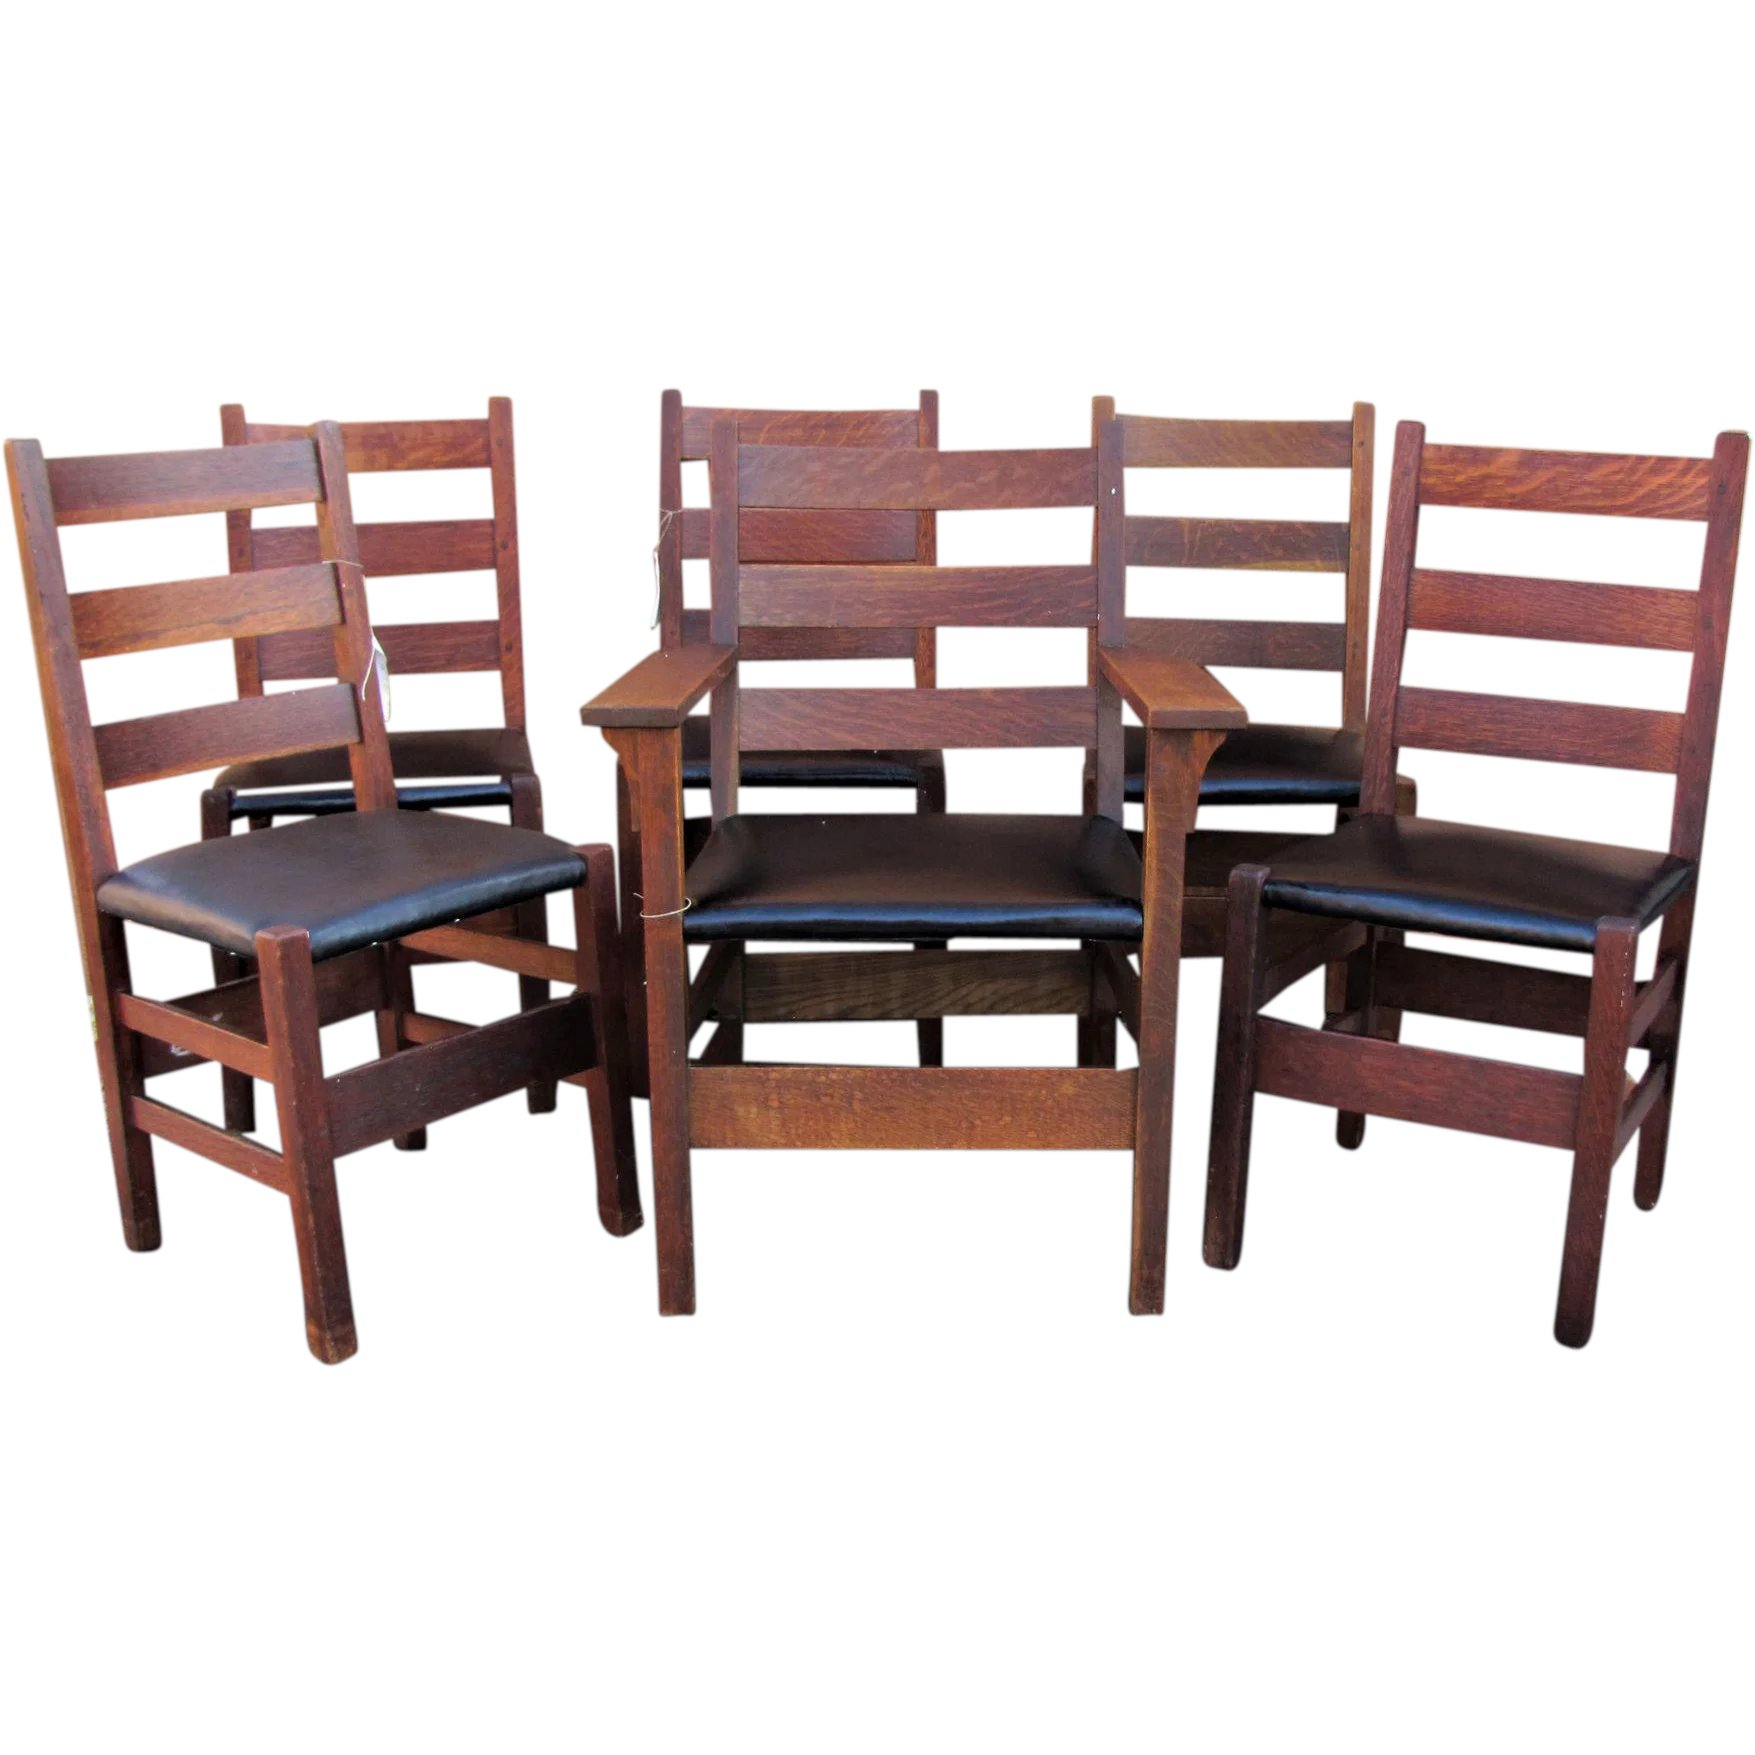 c93336cf09 Antique Set of 6 Gustav Stickley Dining Chairs w5000 : Antique Mission  Furniture | Ruby Lane